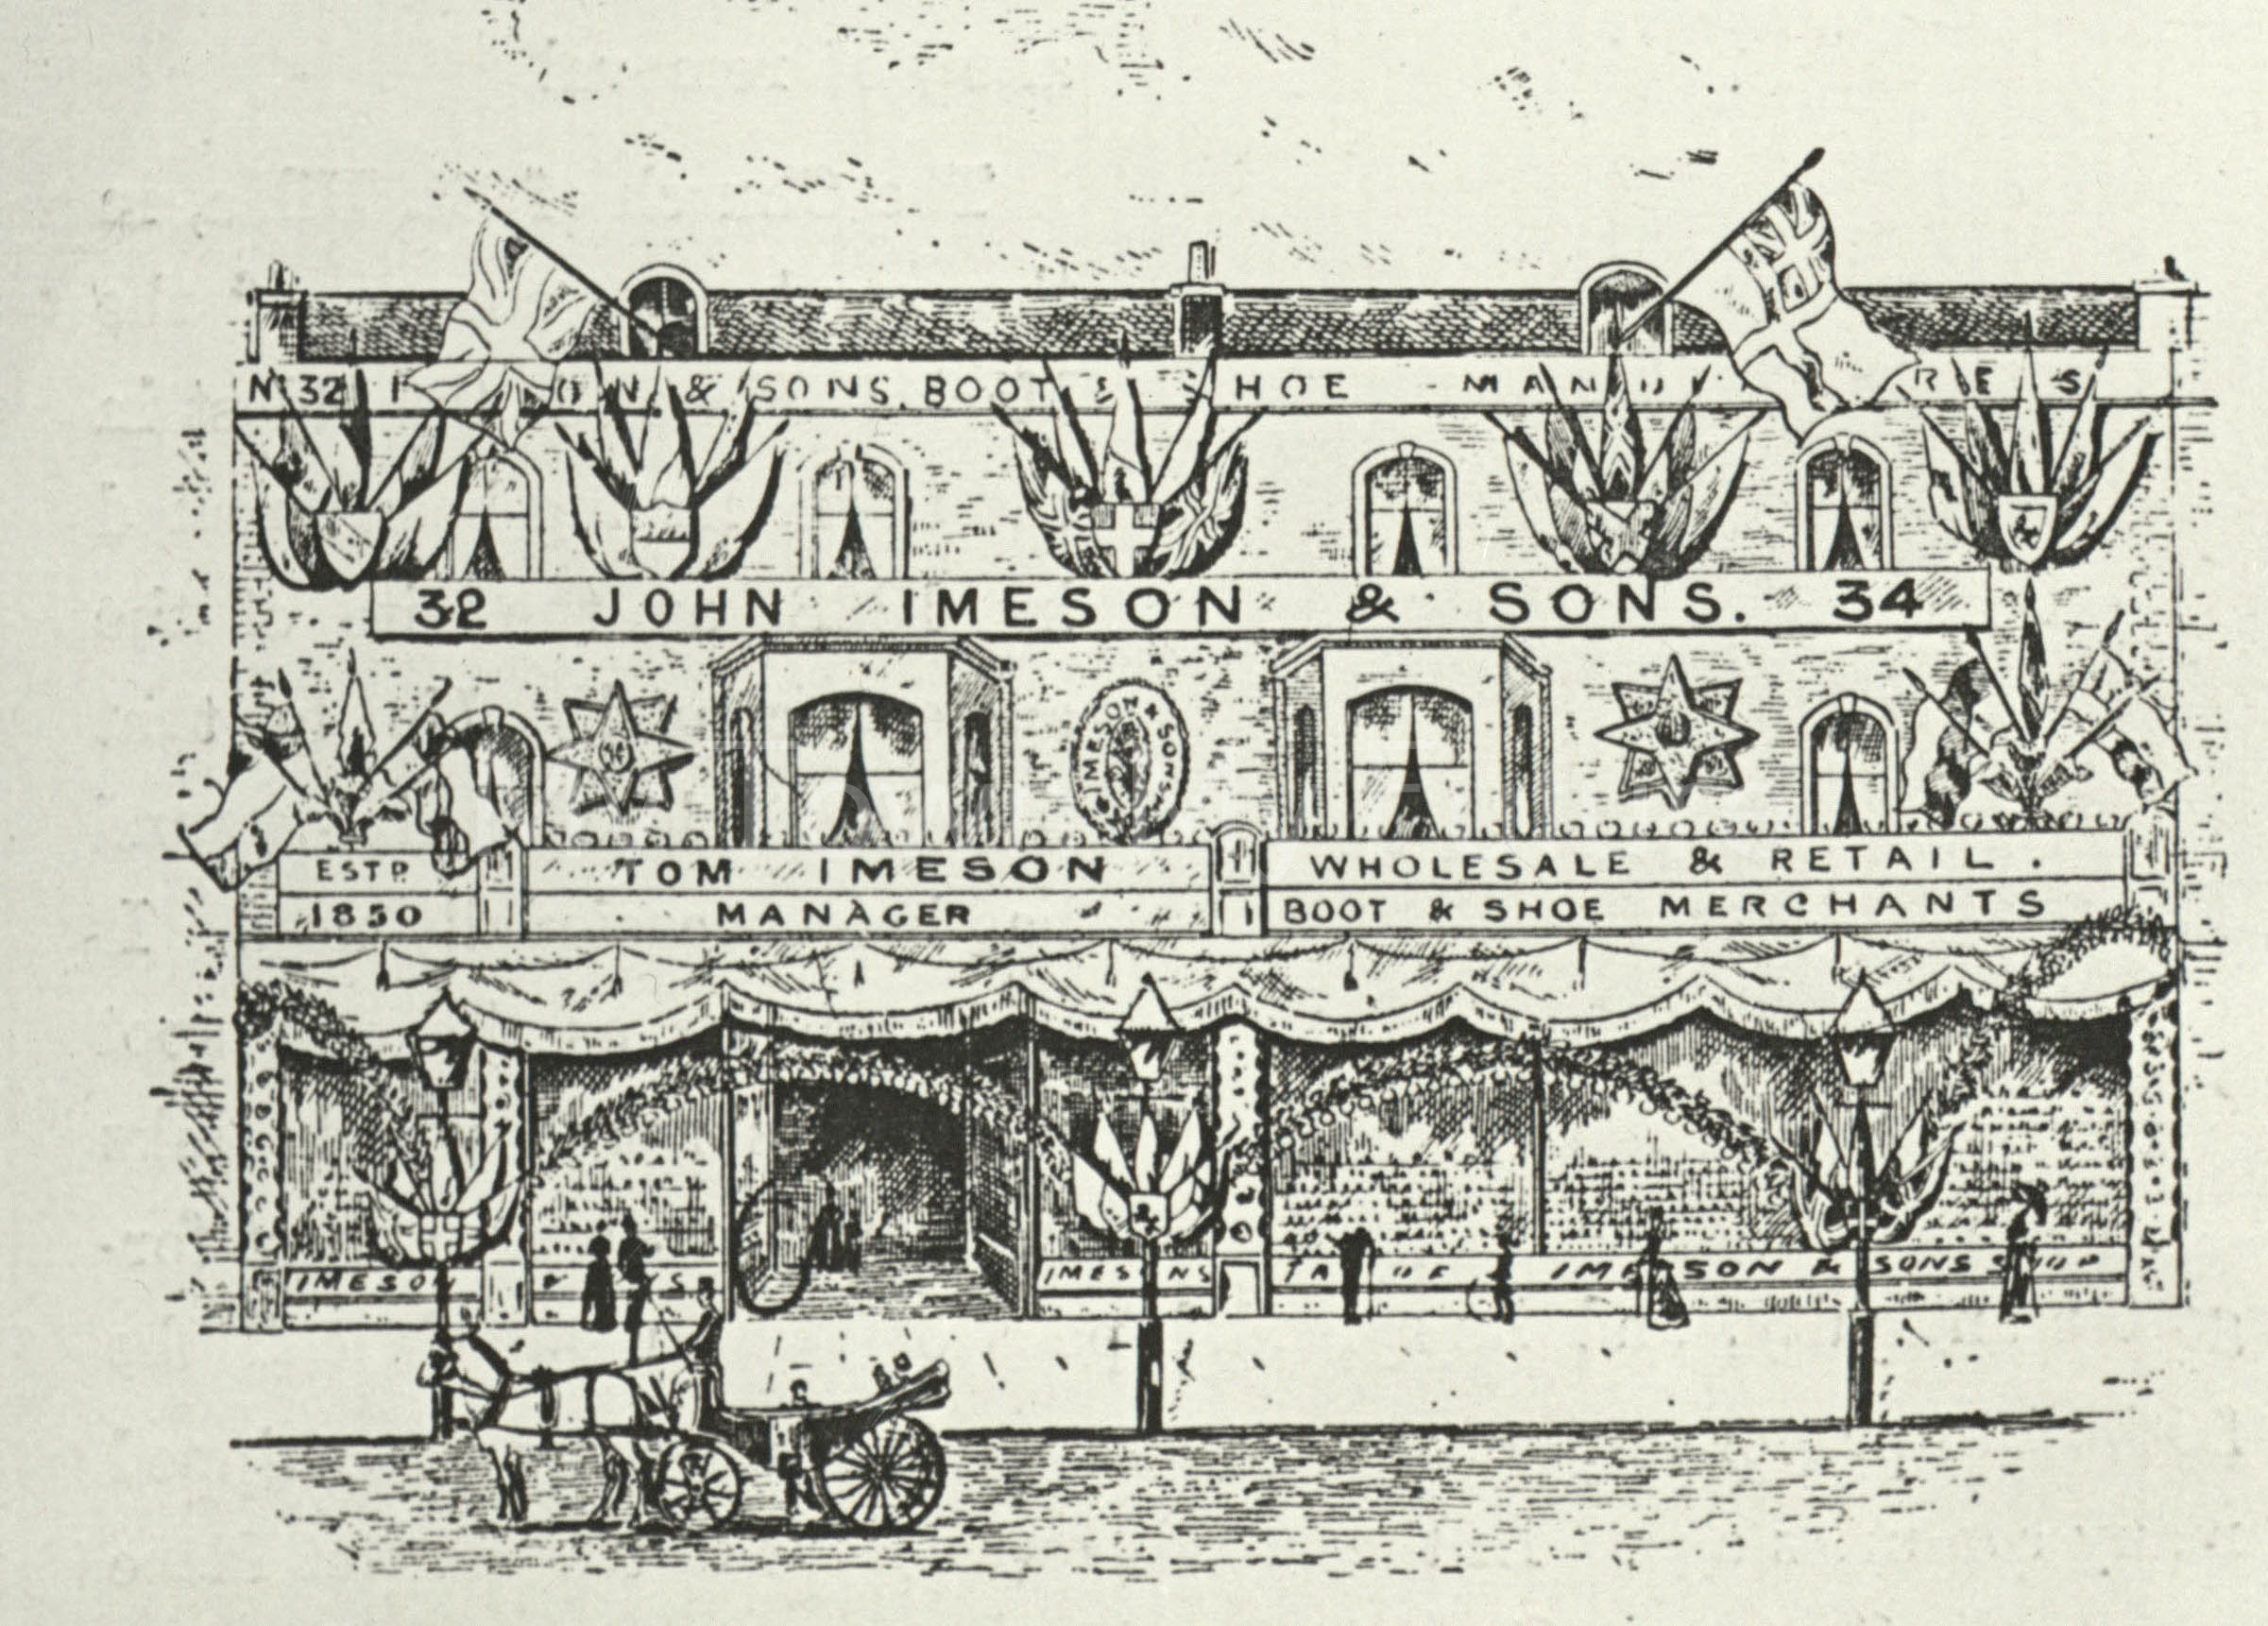 John Imeson and Sons Store, Sussex Street, St Hilda's c1889